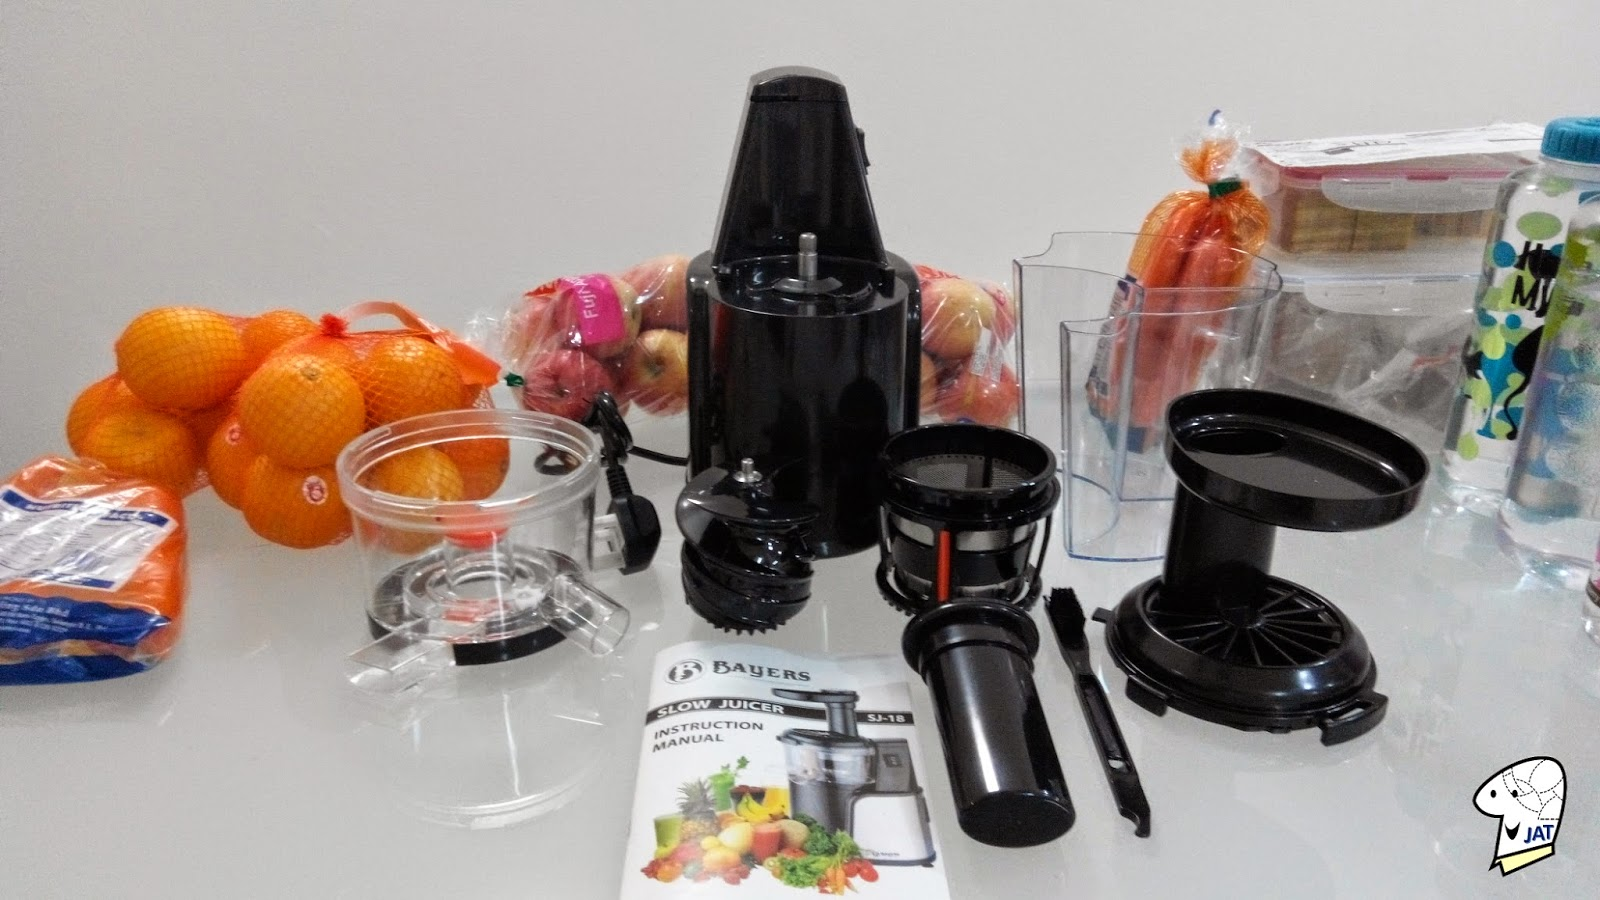 Bayers Dual Stage Slow Juicer, dissembled